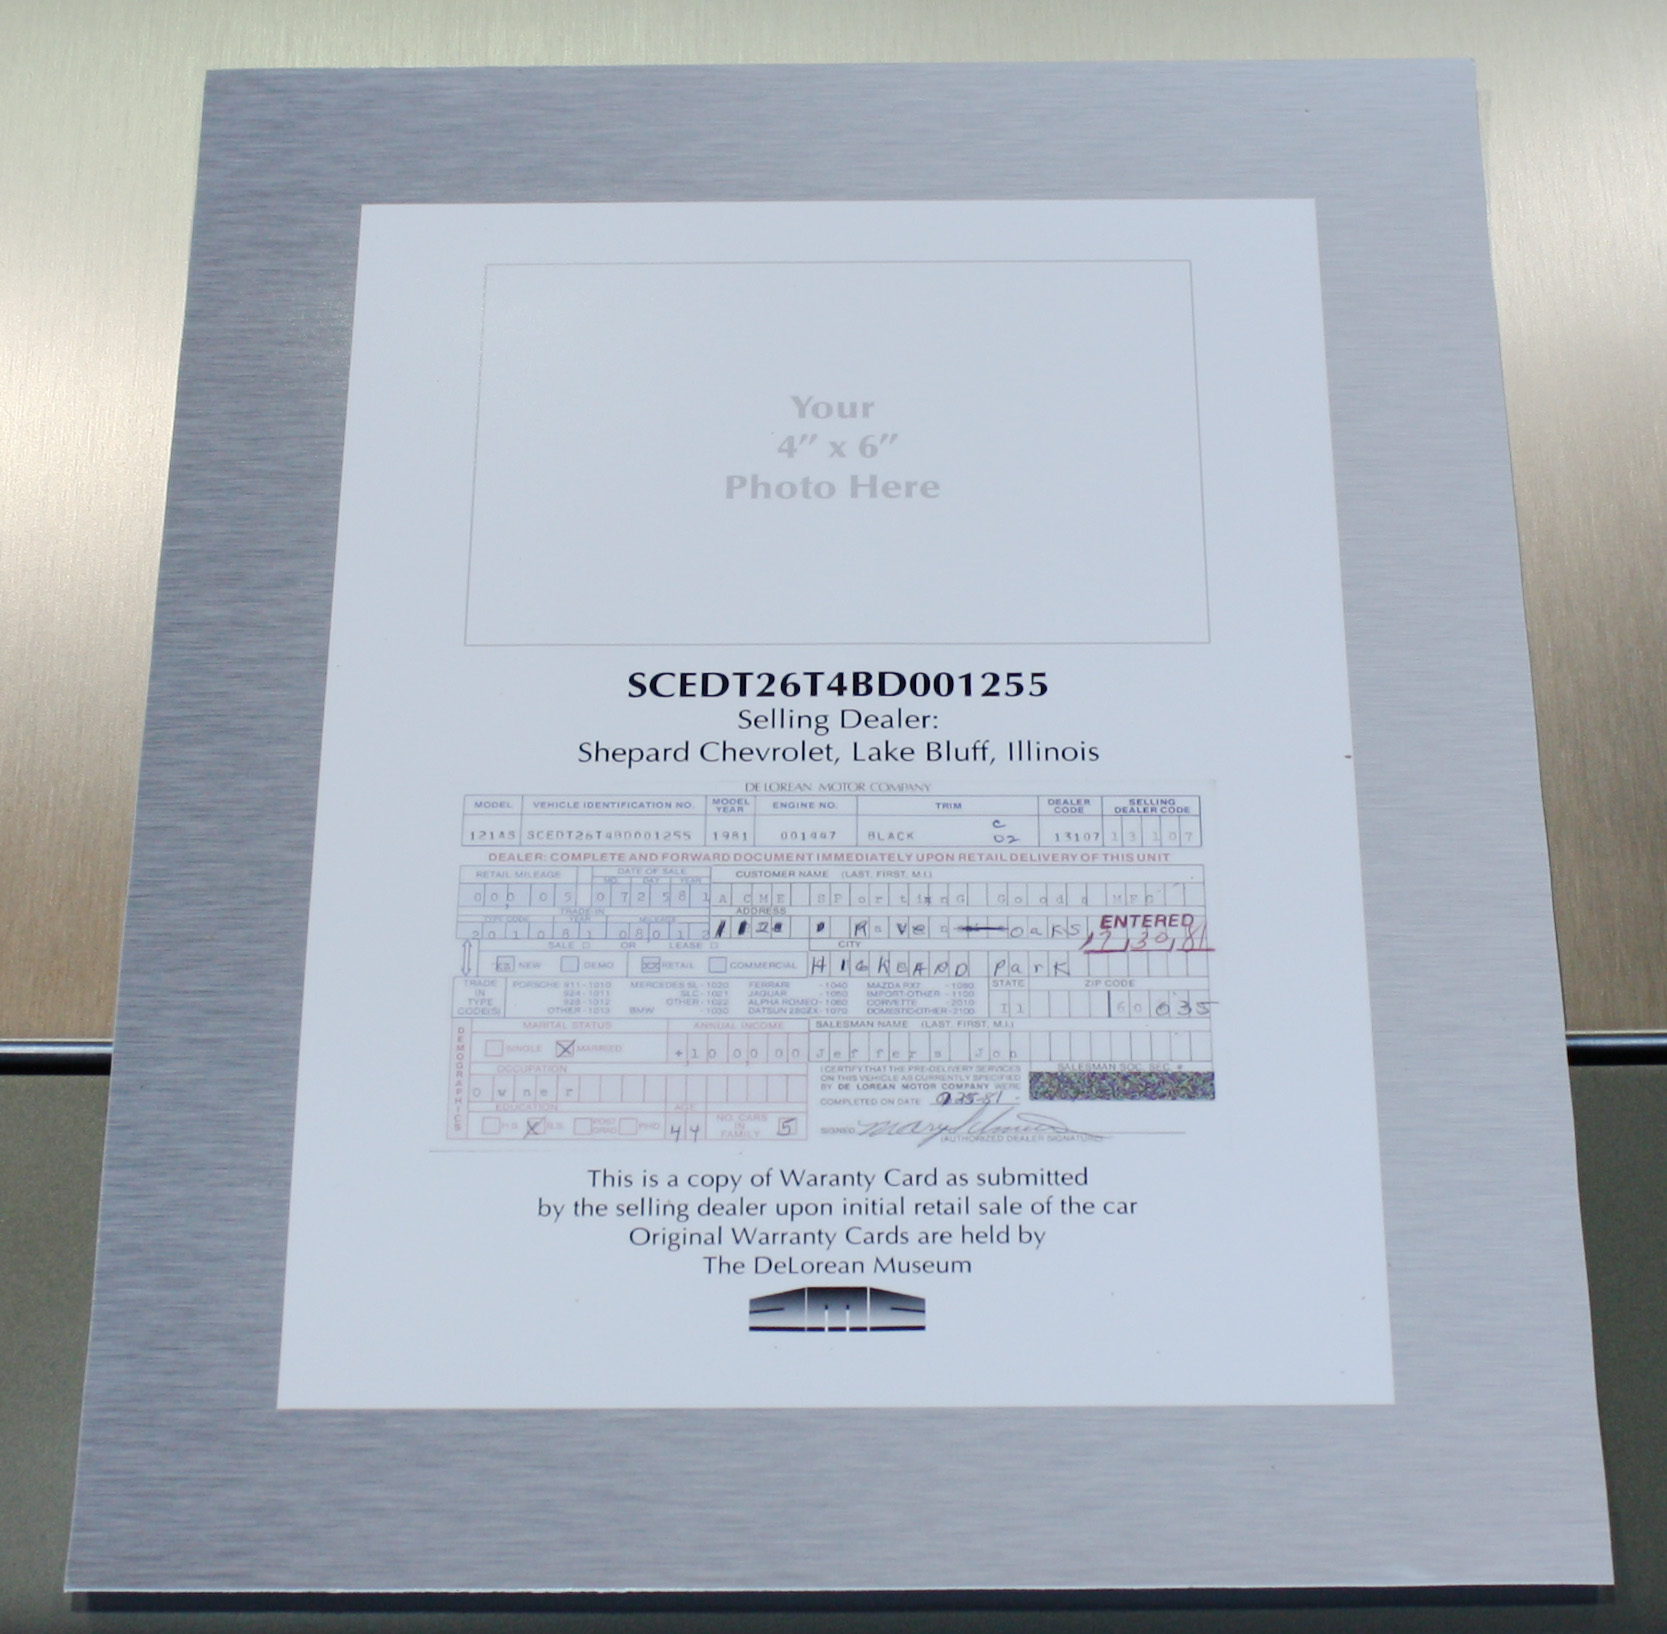 warranty registration card test limited lifetime warranty registration card. Warranty Card Takes 3 4 Weeks To Be Shipped